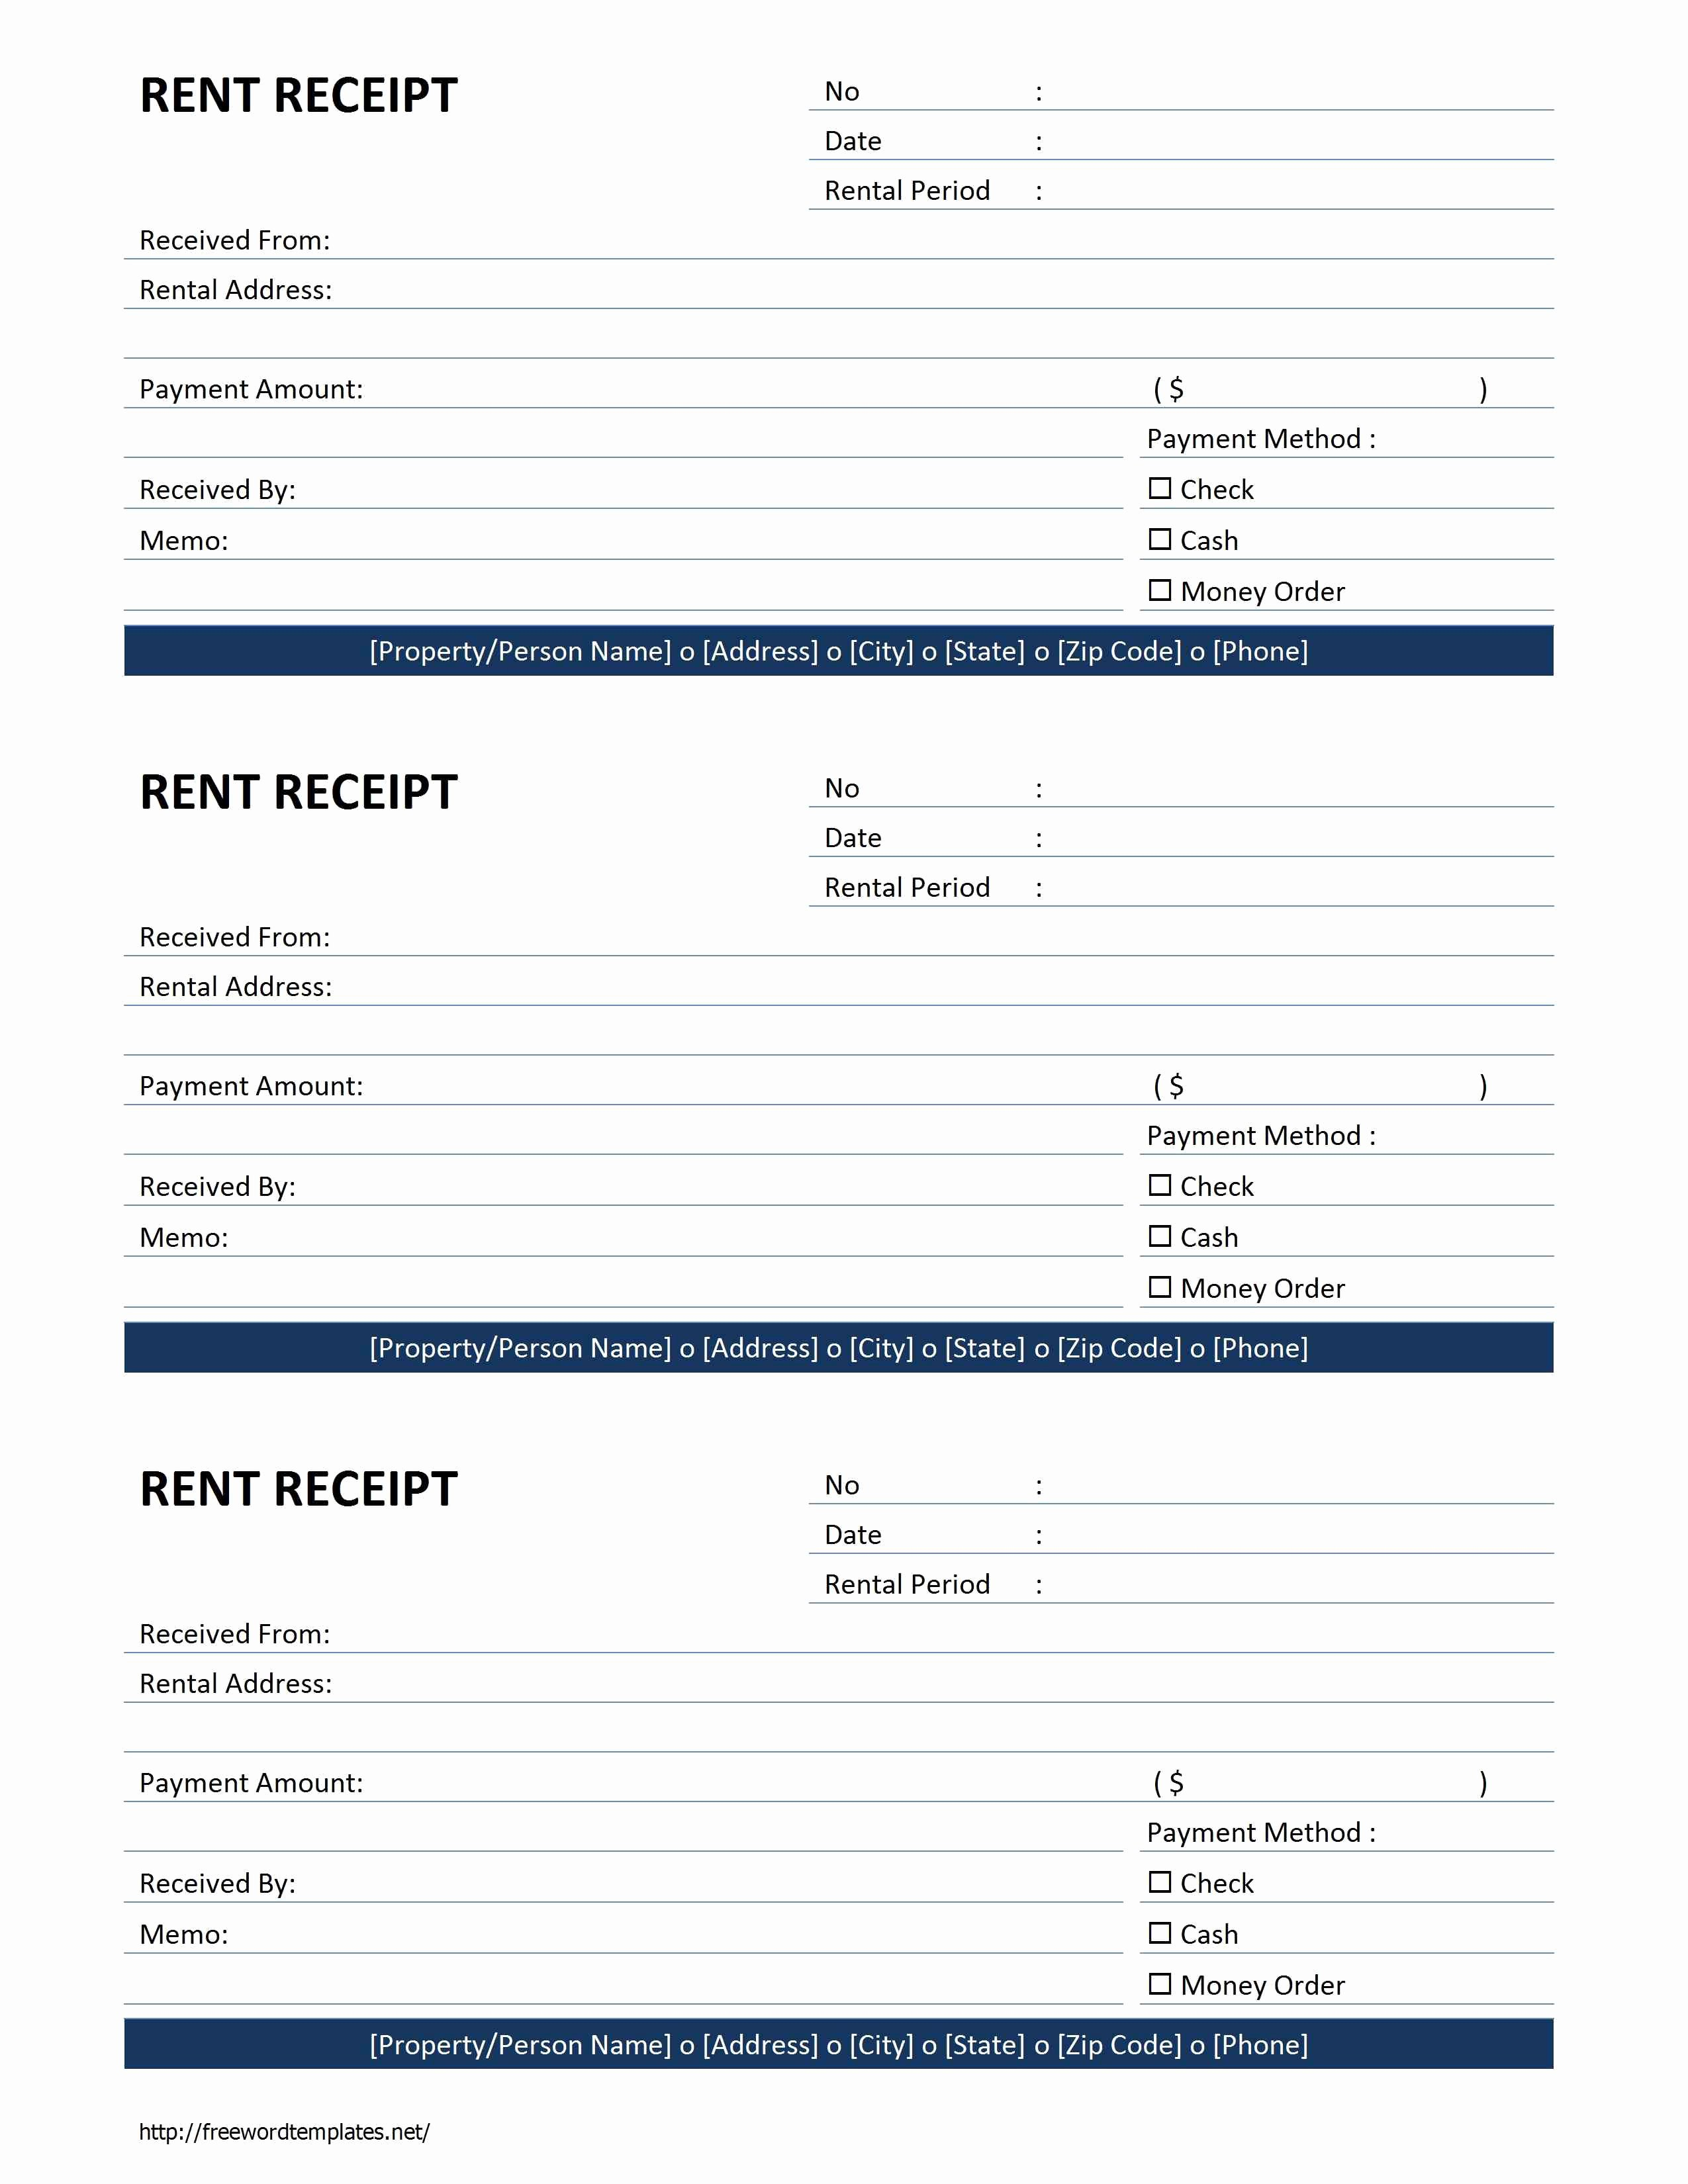 Rent Receipt Template Free Awesome Rent Receipt Template